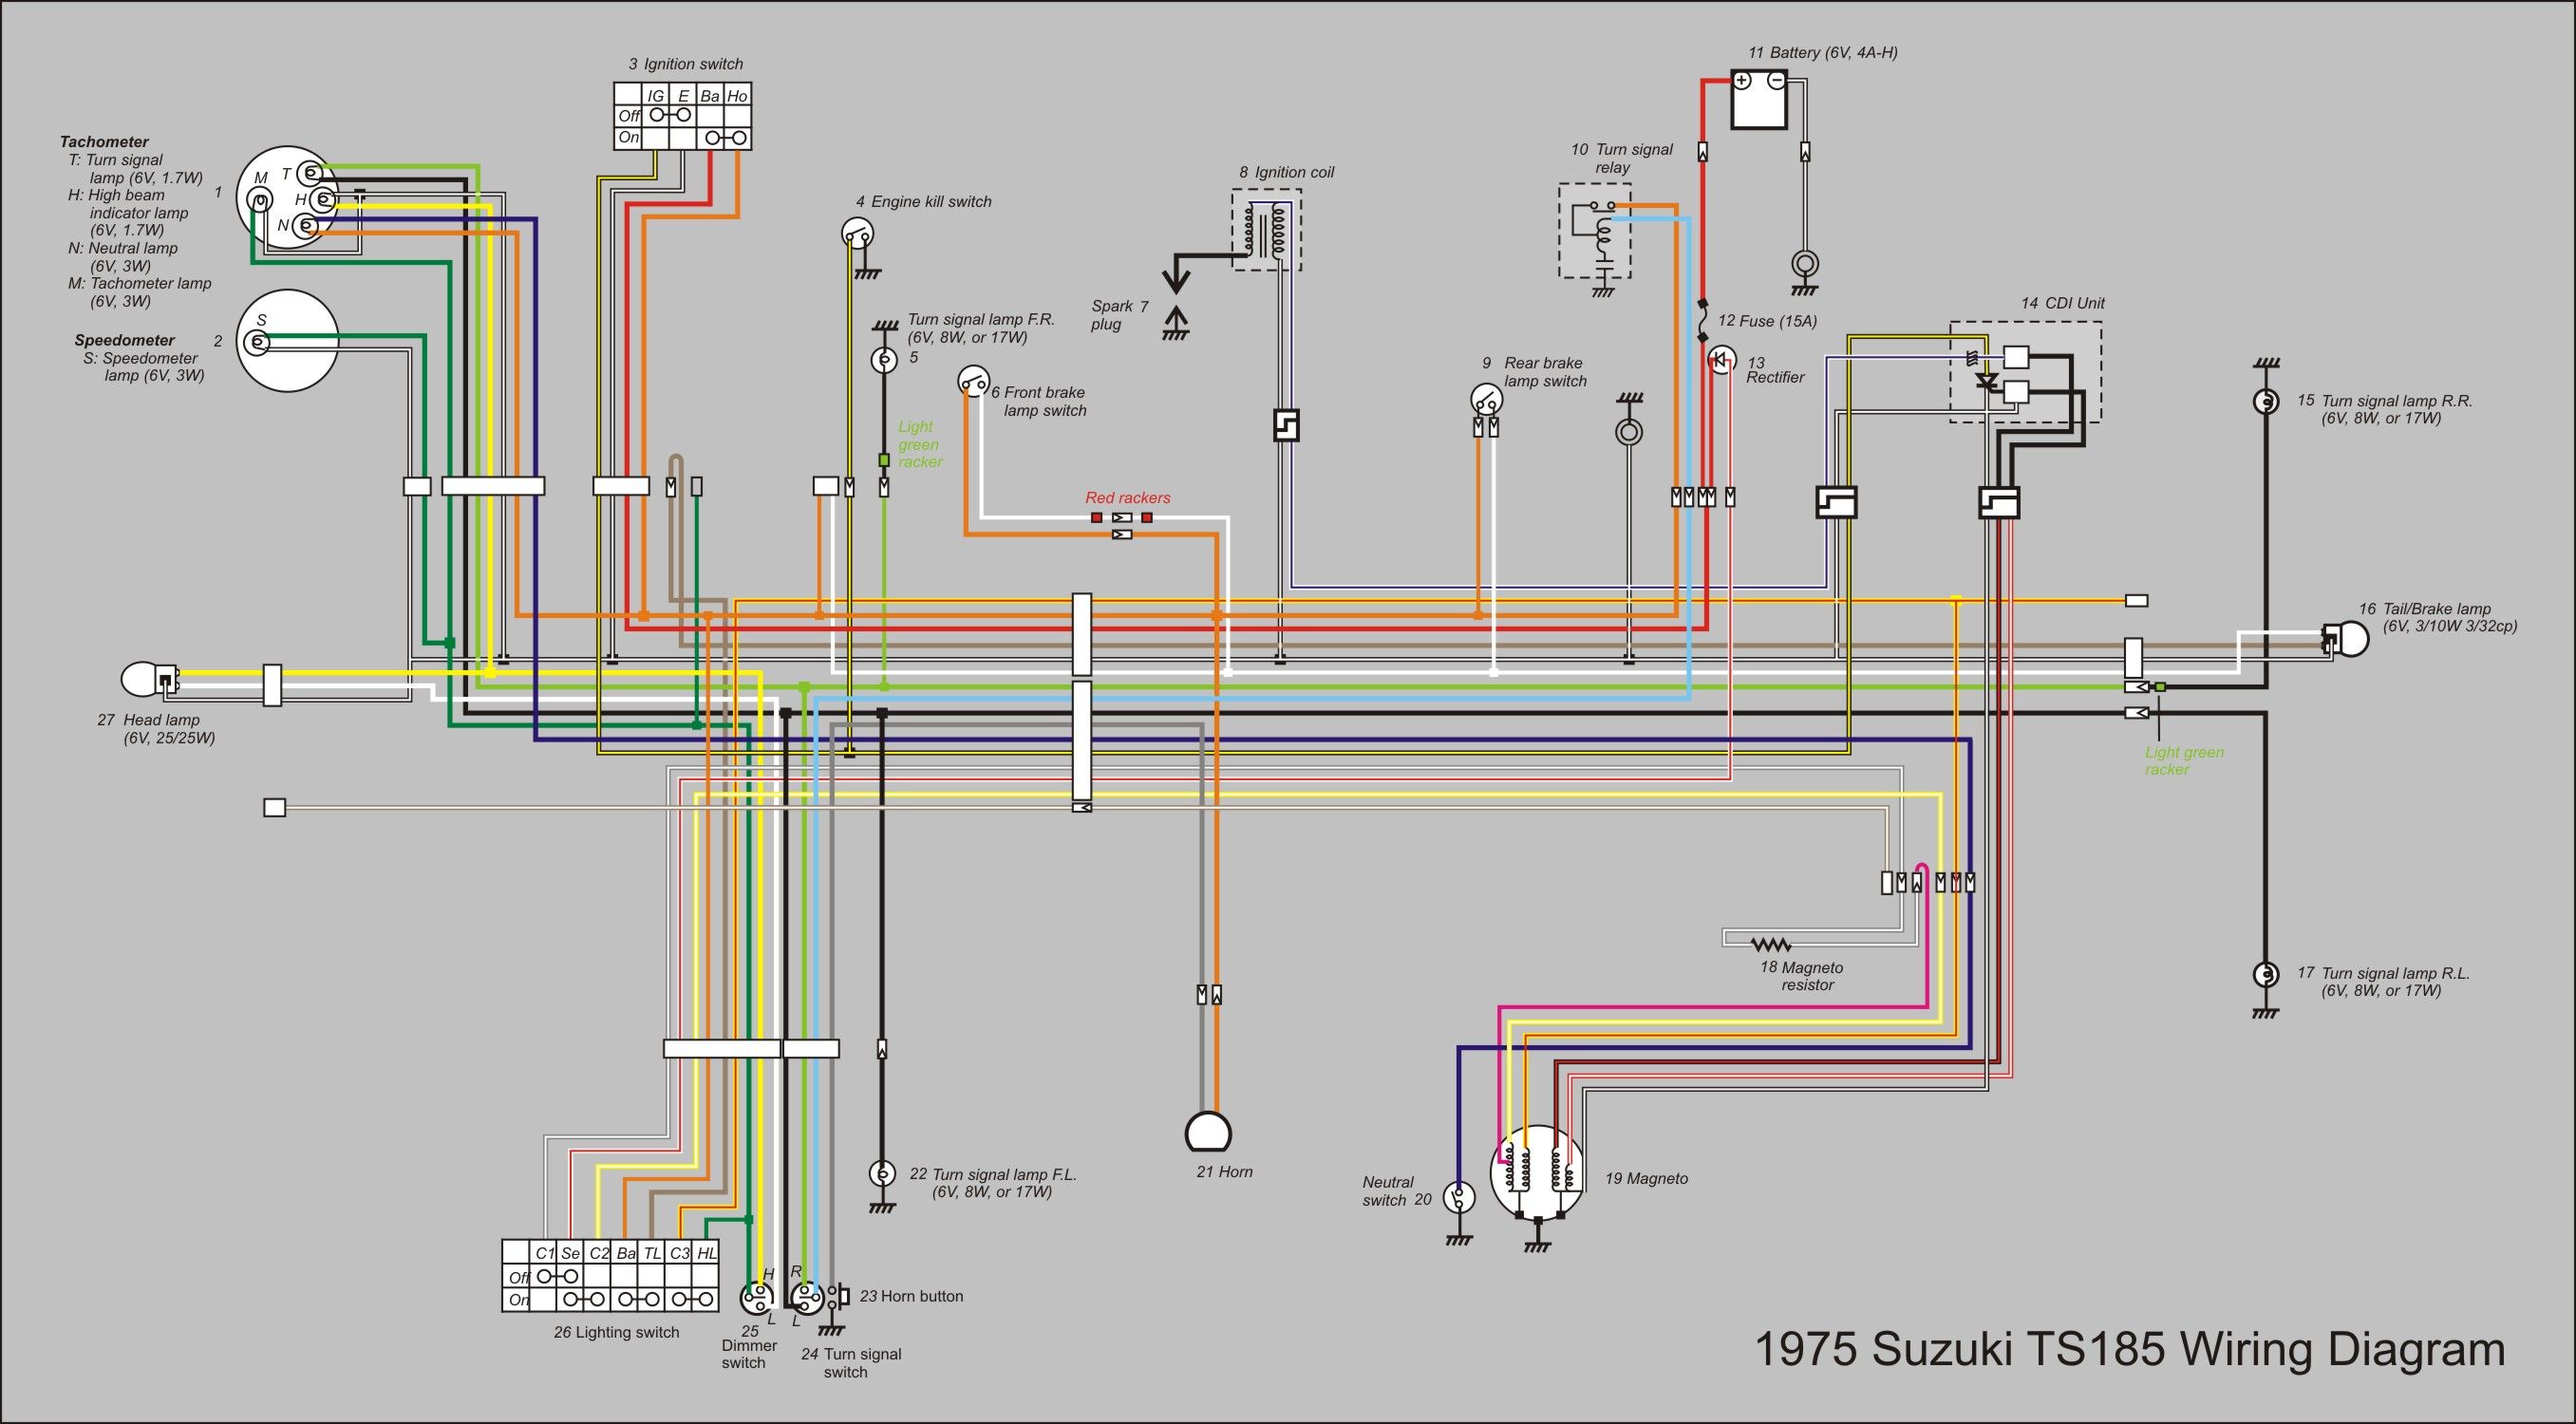 File TS185 Wiring Diagram New Wikimedia Commons